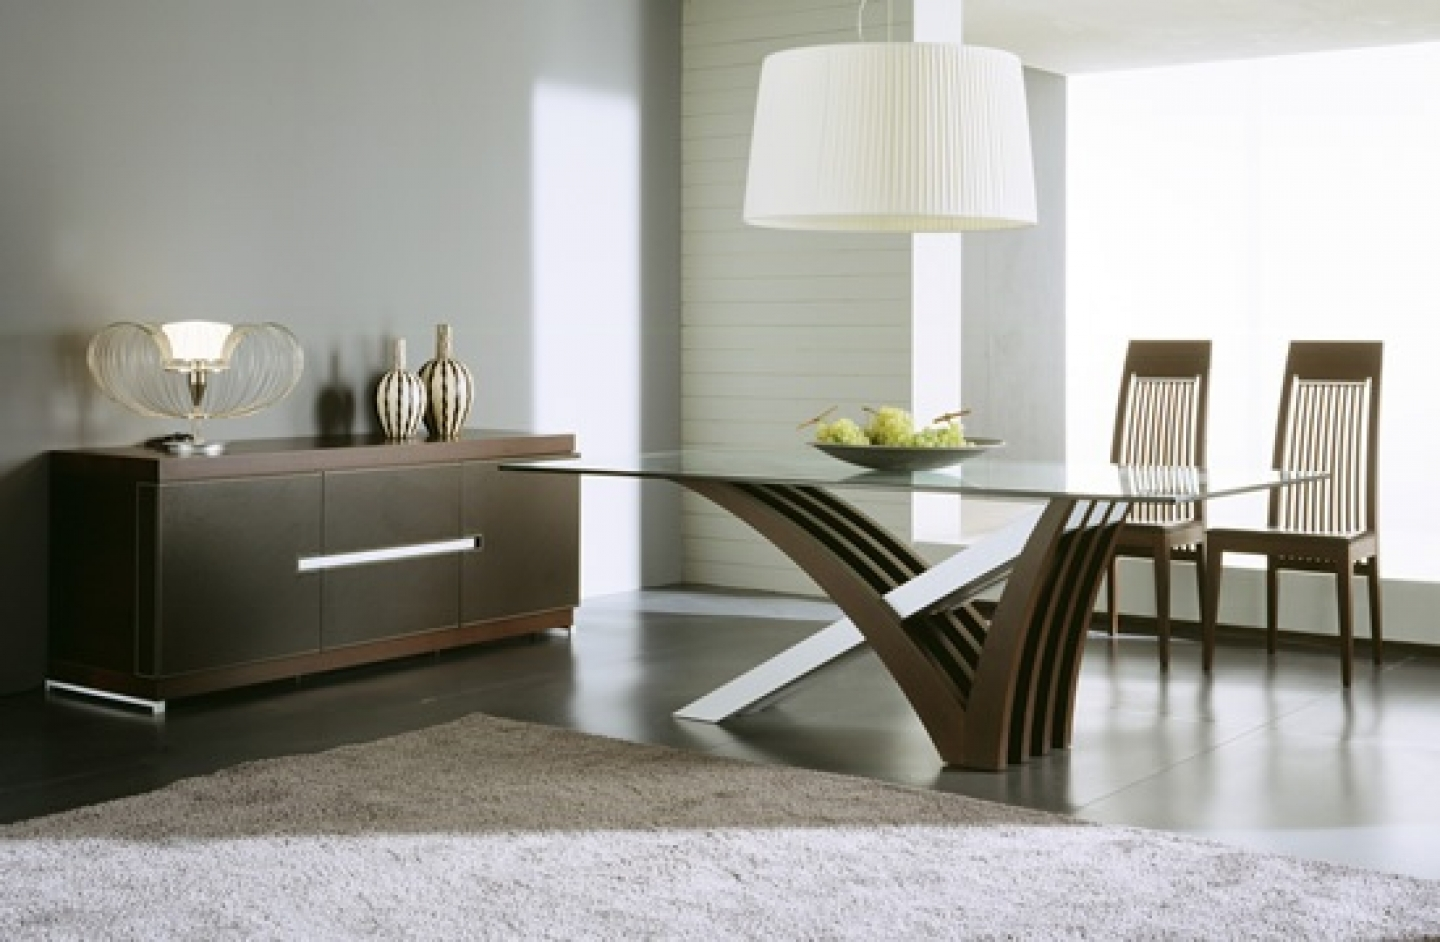 Teak patio furniture at home decor dream house for Modern dining table decoration ideas